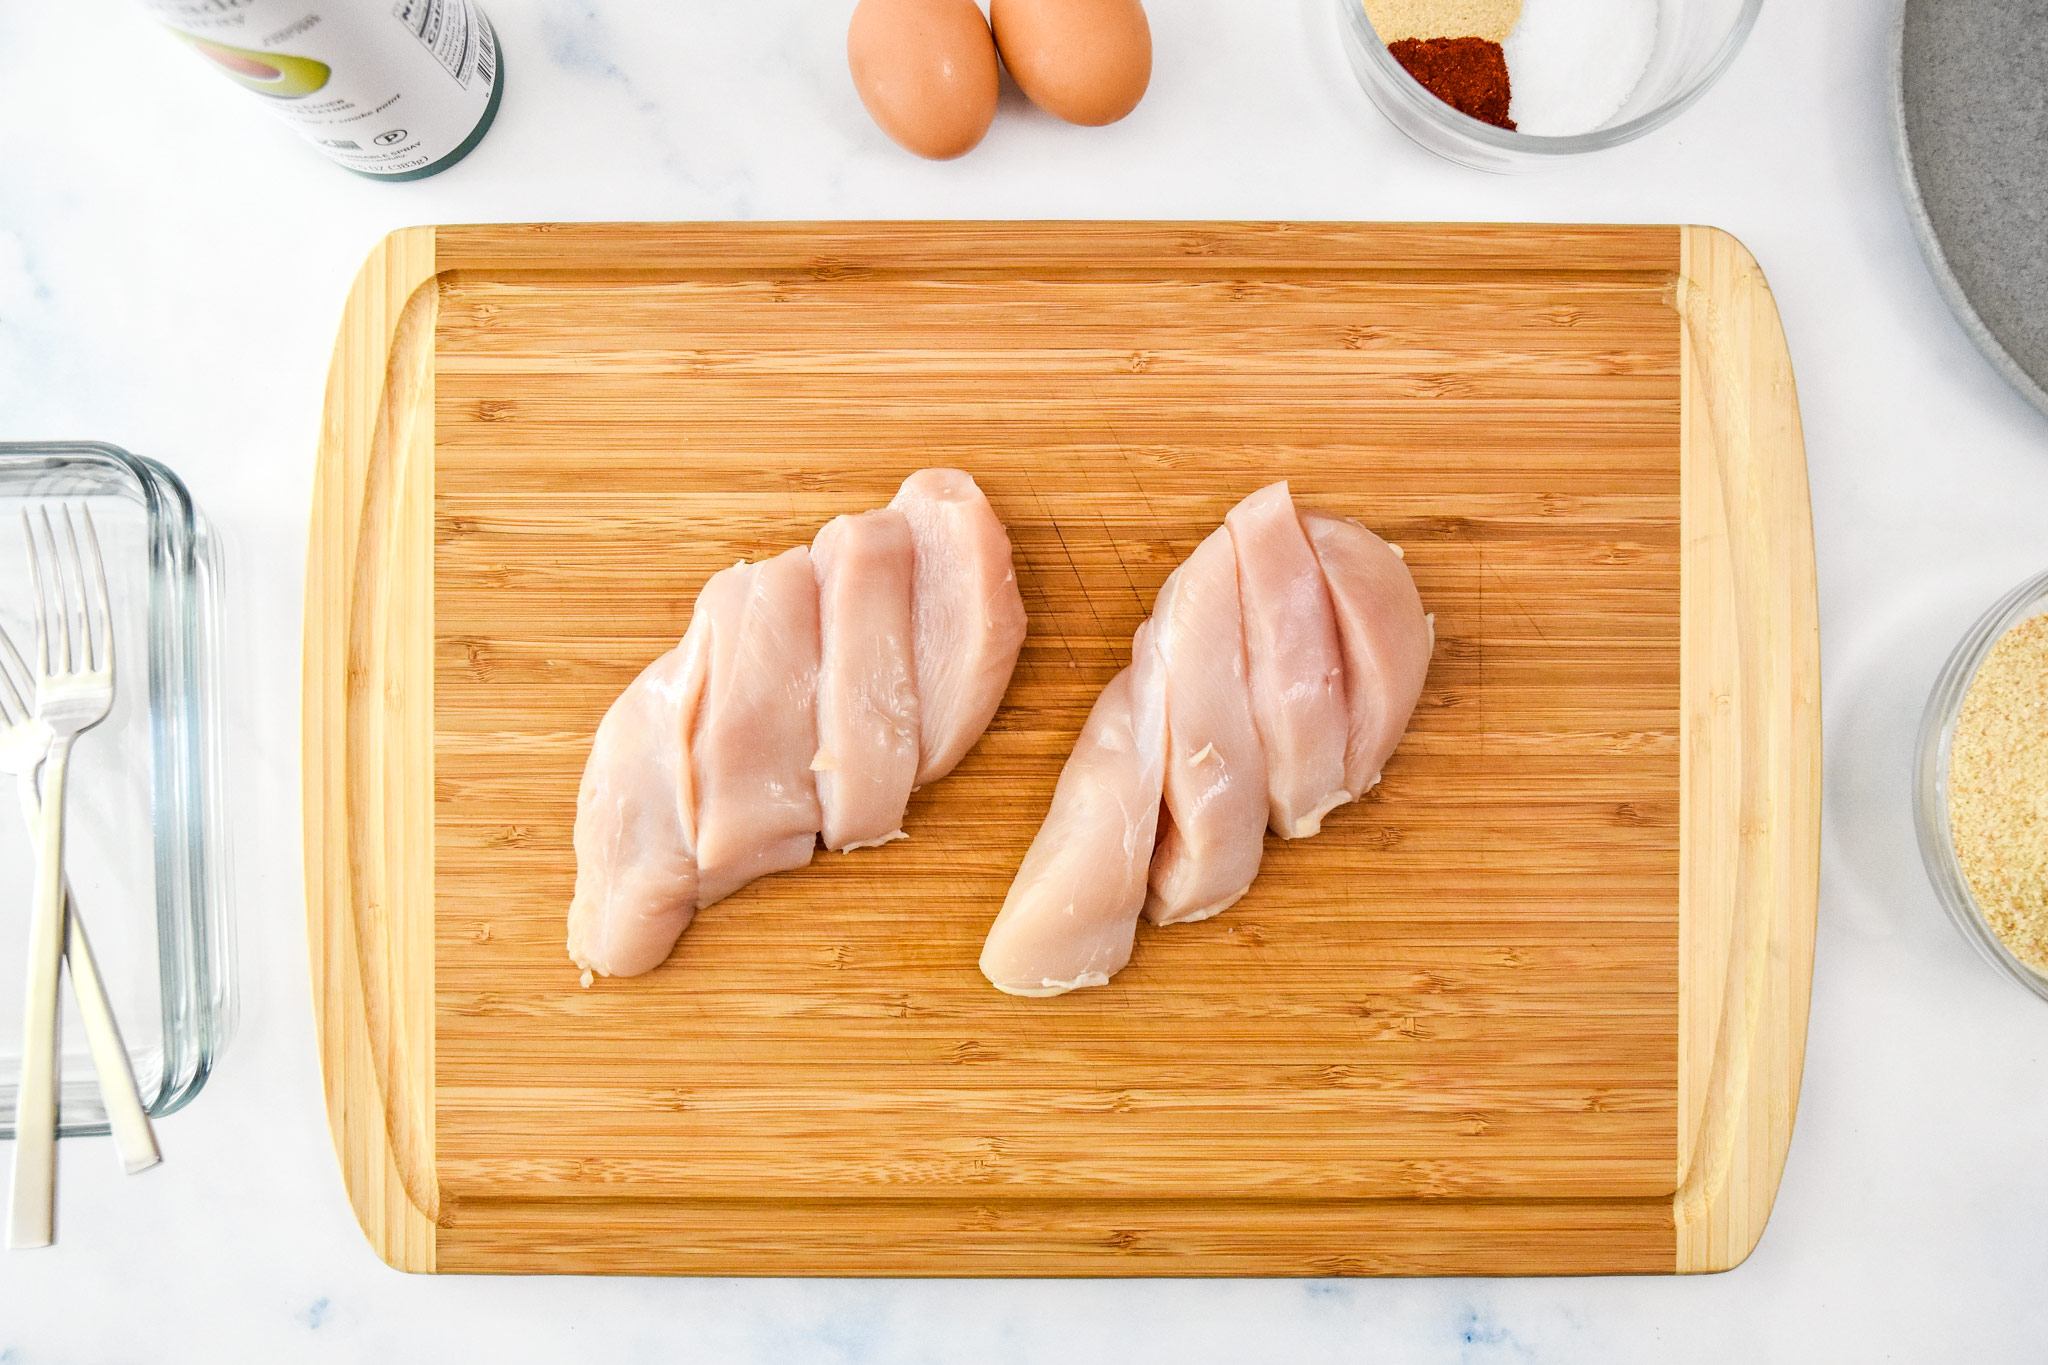 chicken breasts sliced on a cutting board to make chicken tenders.